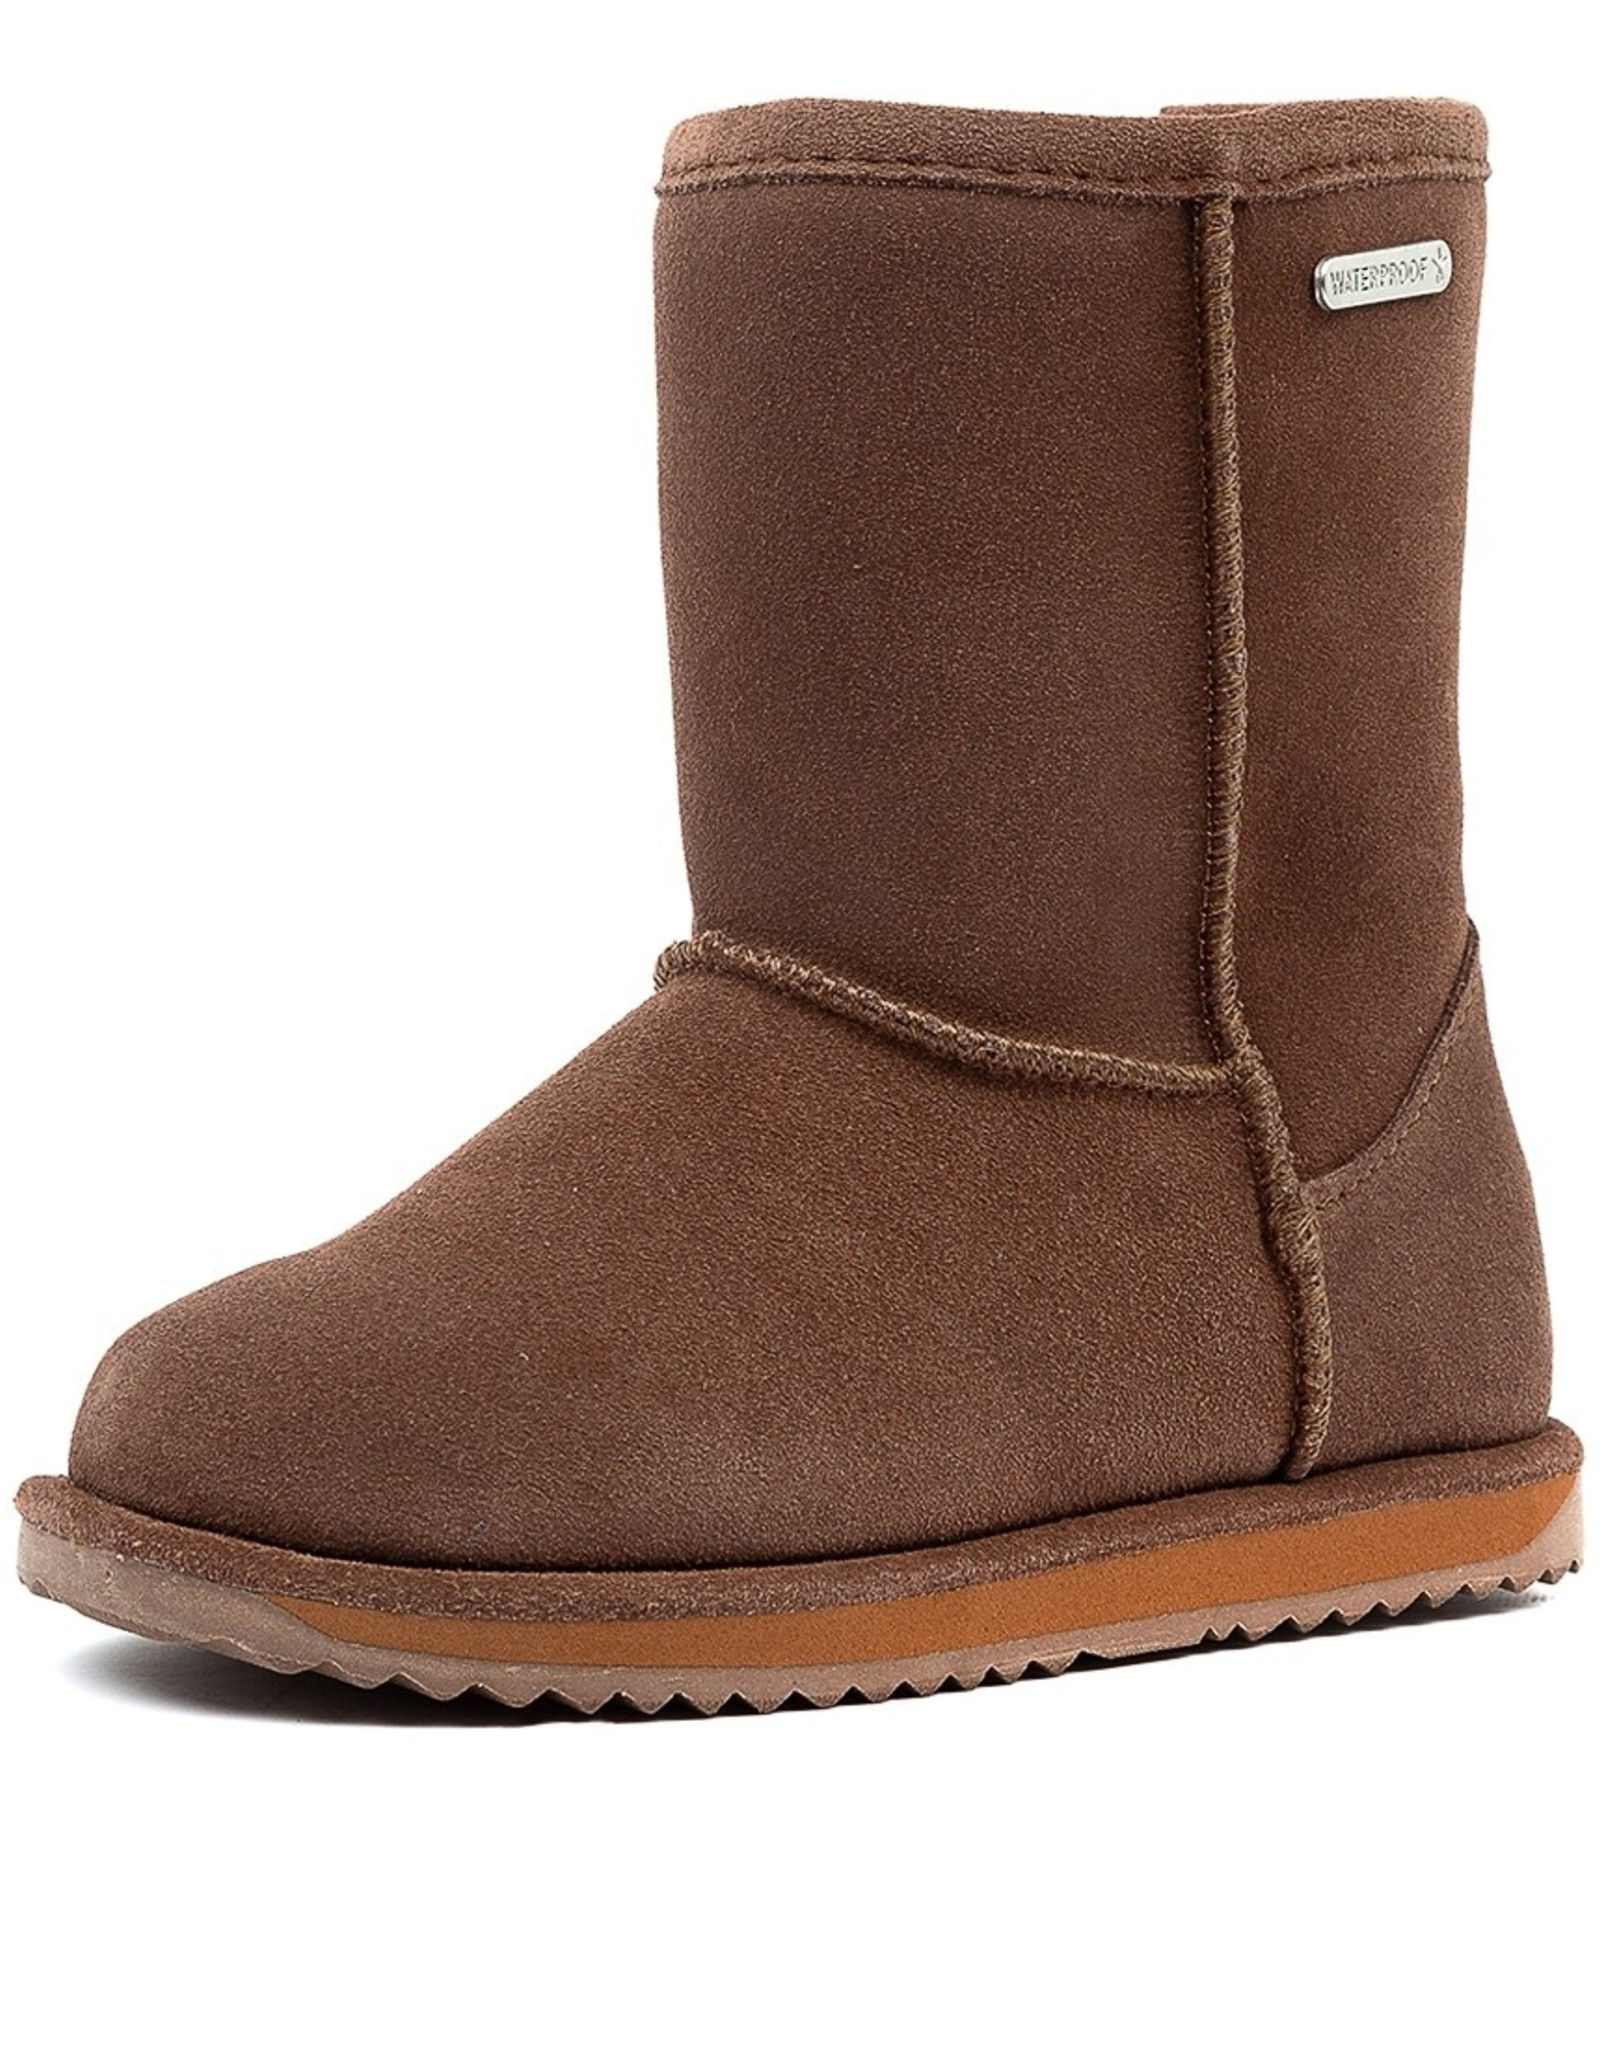 Bottes Brumby